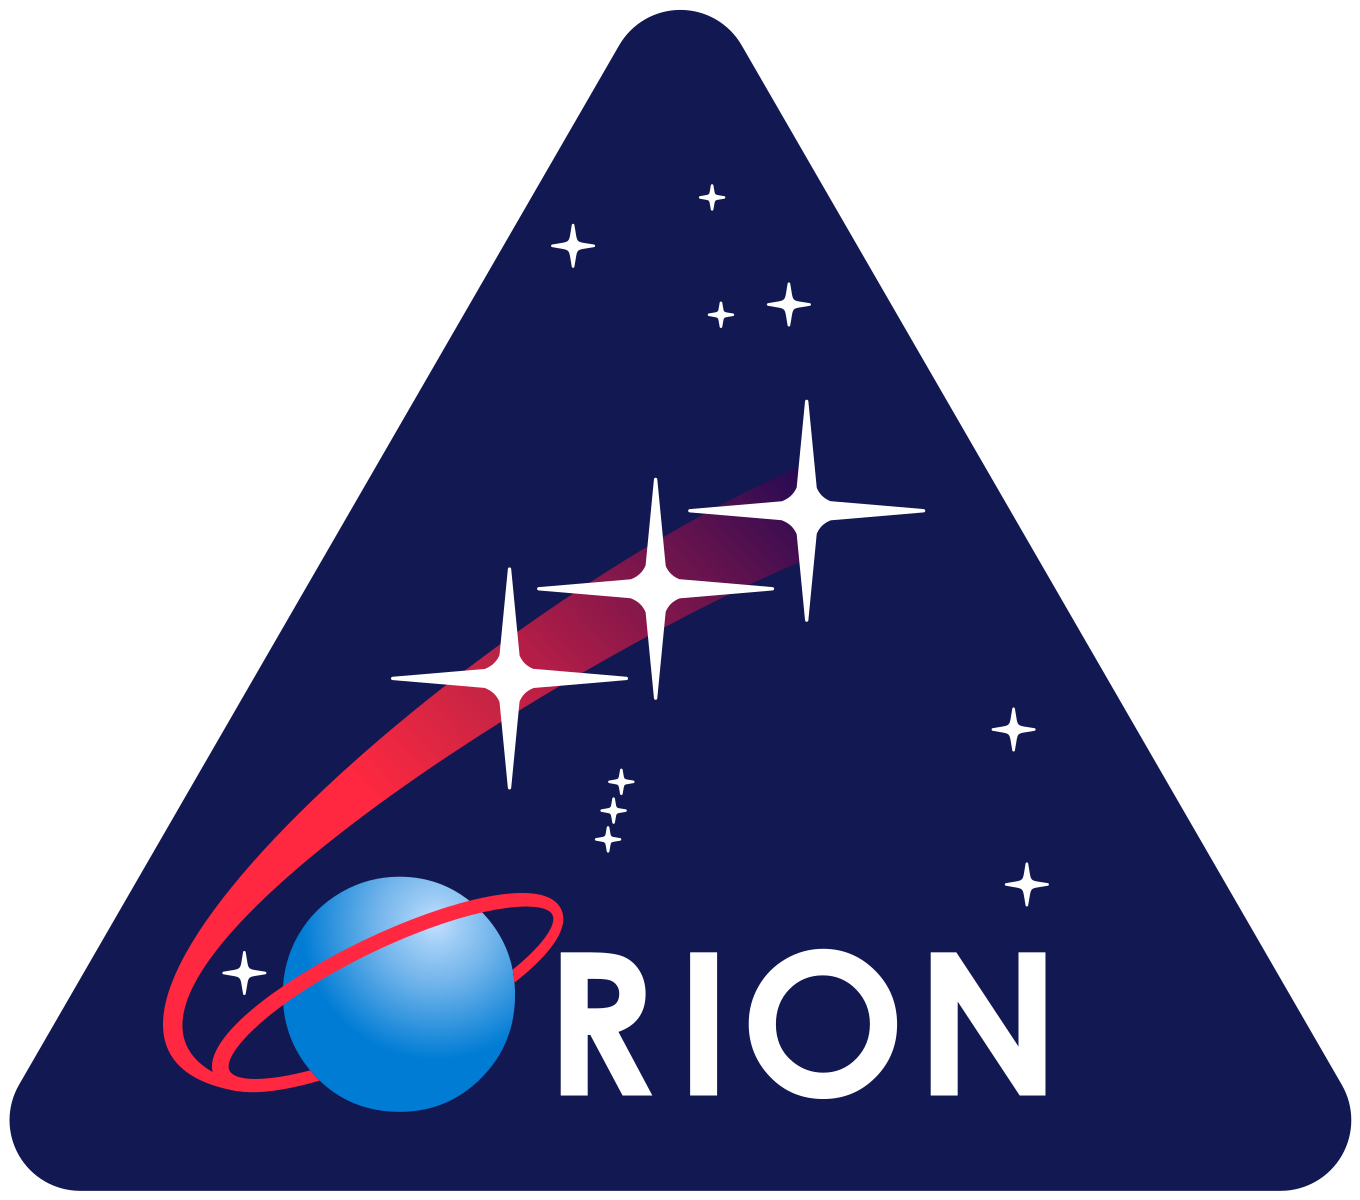 File:Orion Triangle Patch.svg.